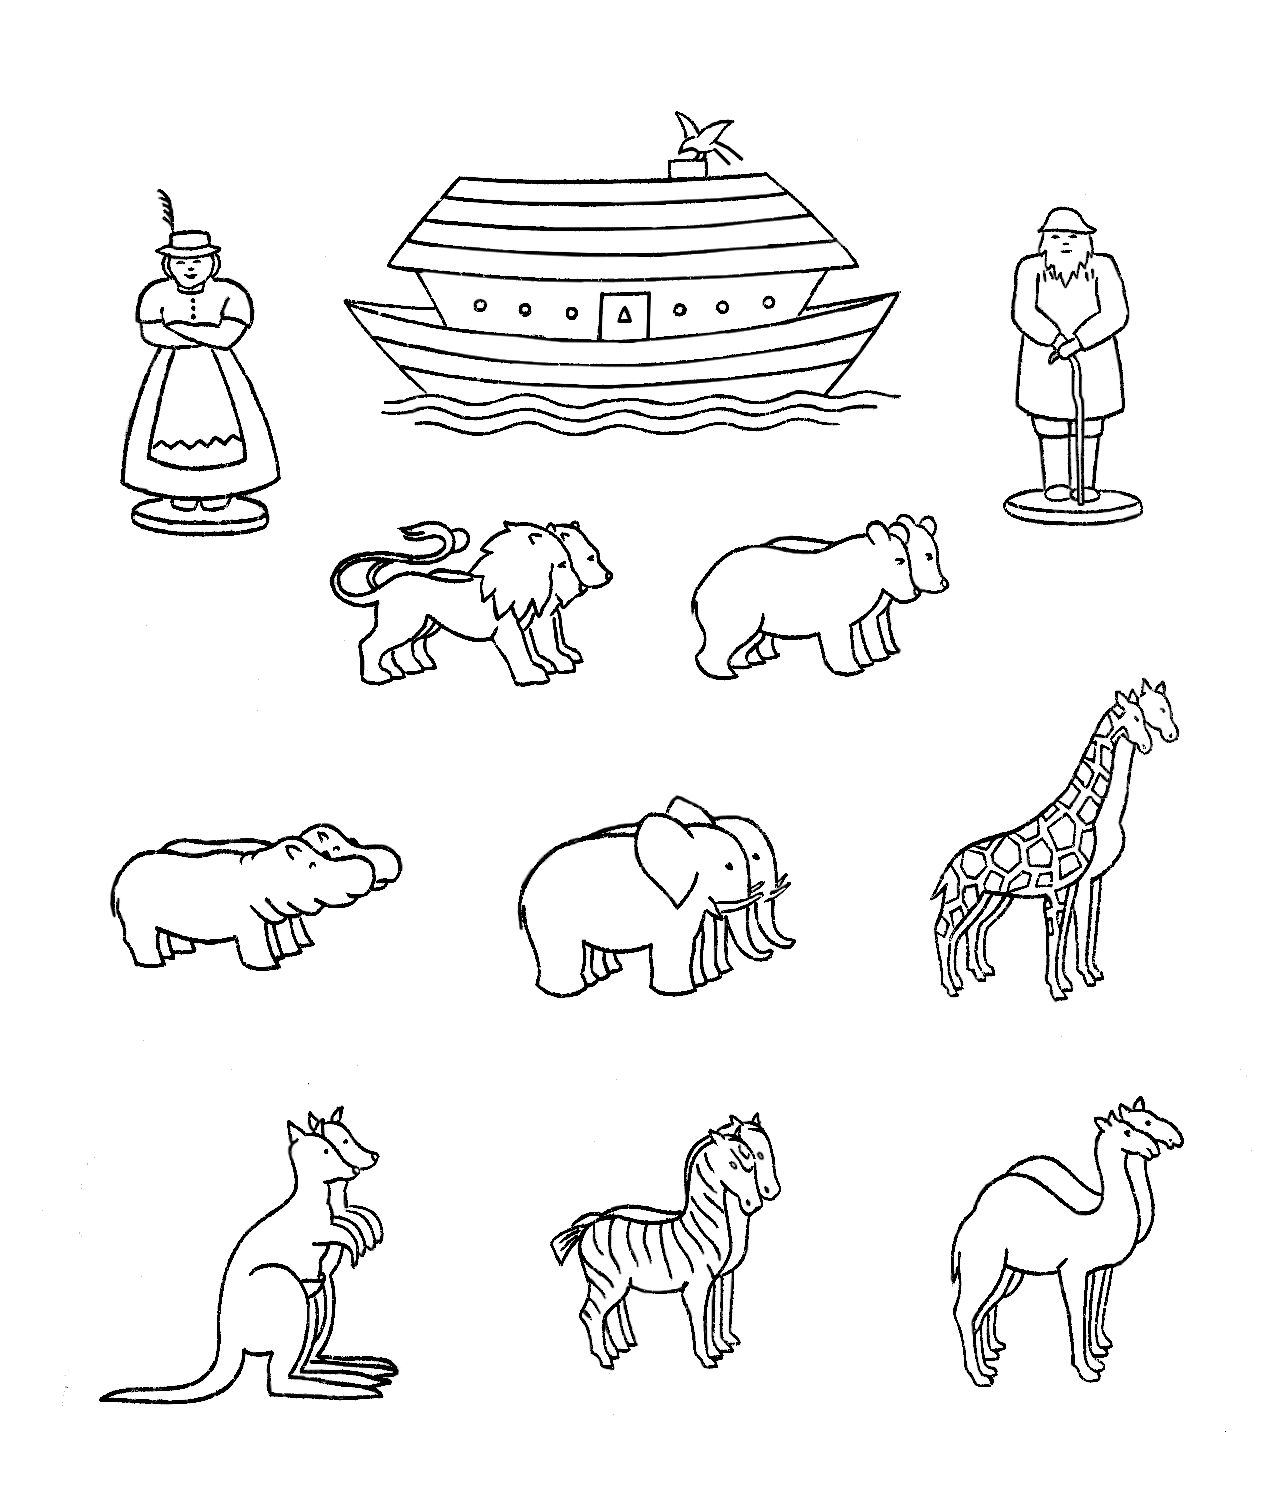 Templates Or Coloring Pages For Preschool Noah S Ark My Friend Mickie Sent Me A Copy Of This Adorable Noah S A Noahs Ark Craft Noahs Ark Animals Ark Craft